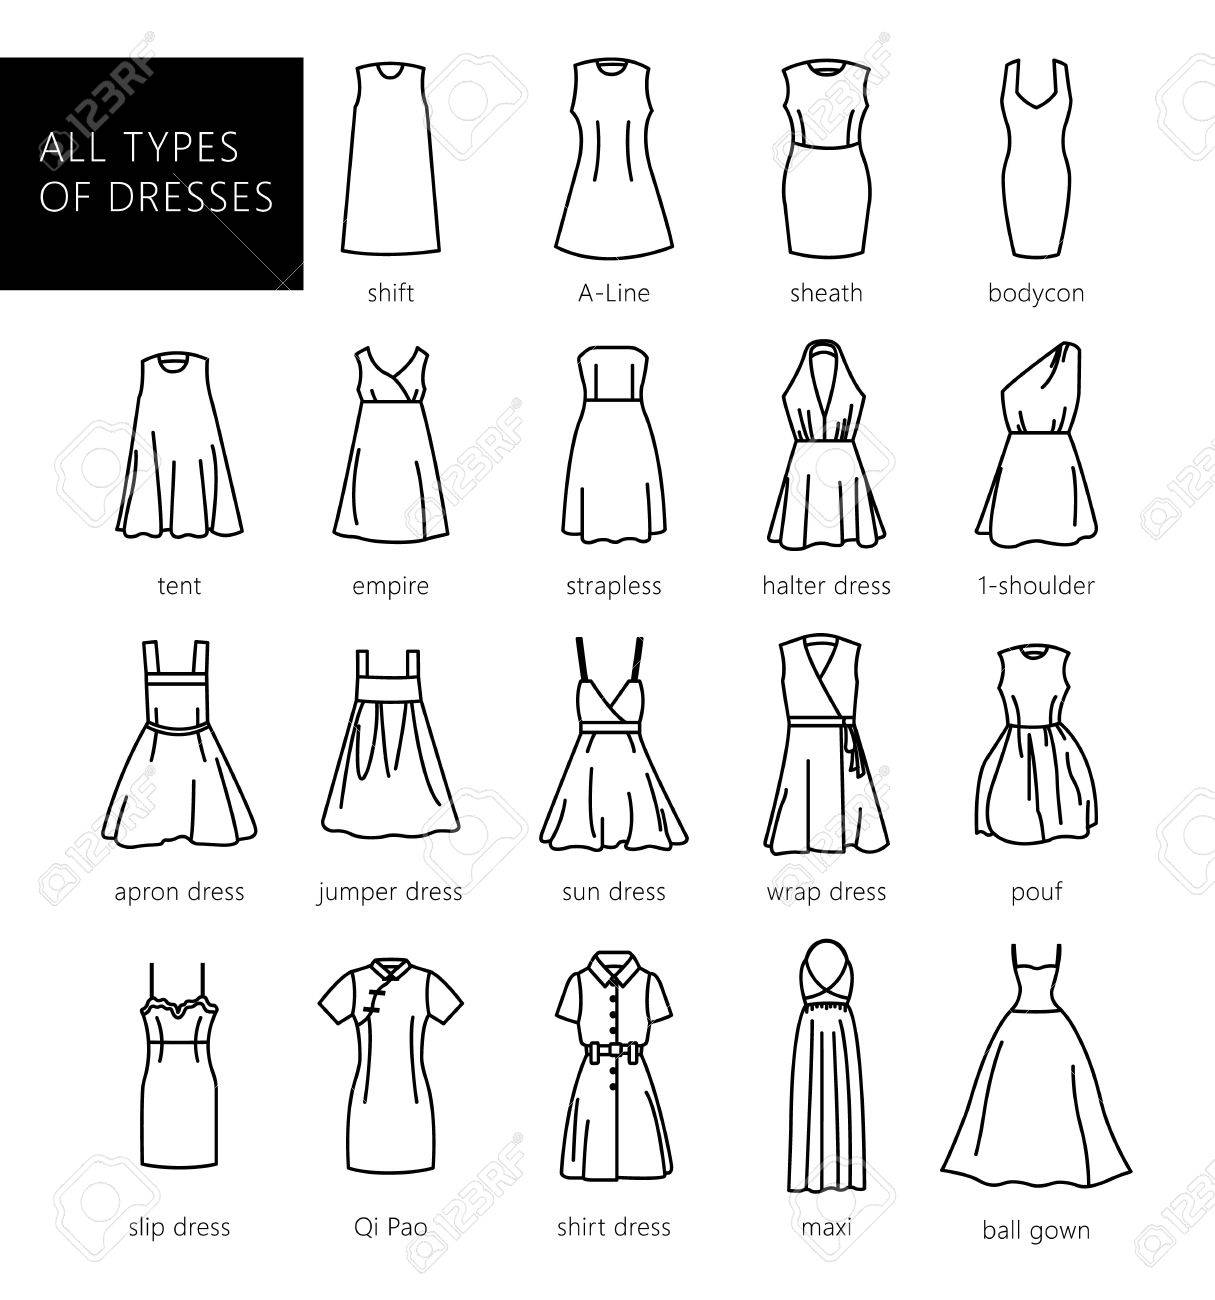 Dress Types Styles